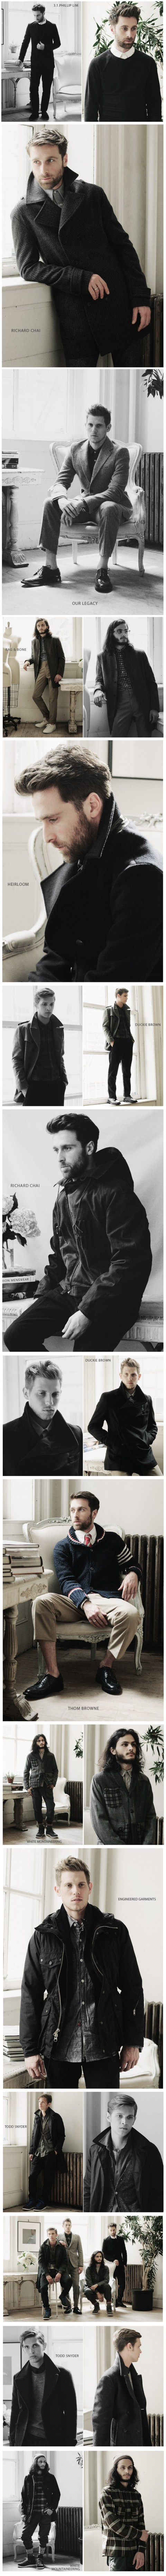 ODIN Fall 2011 Lookbook